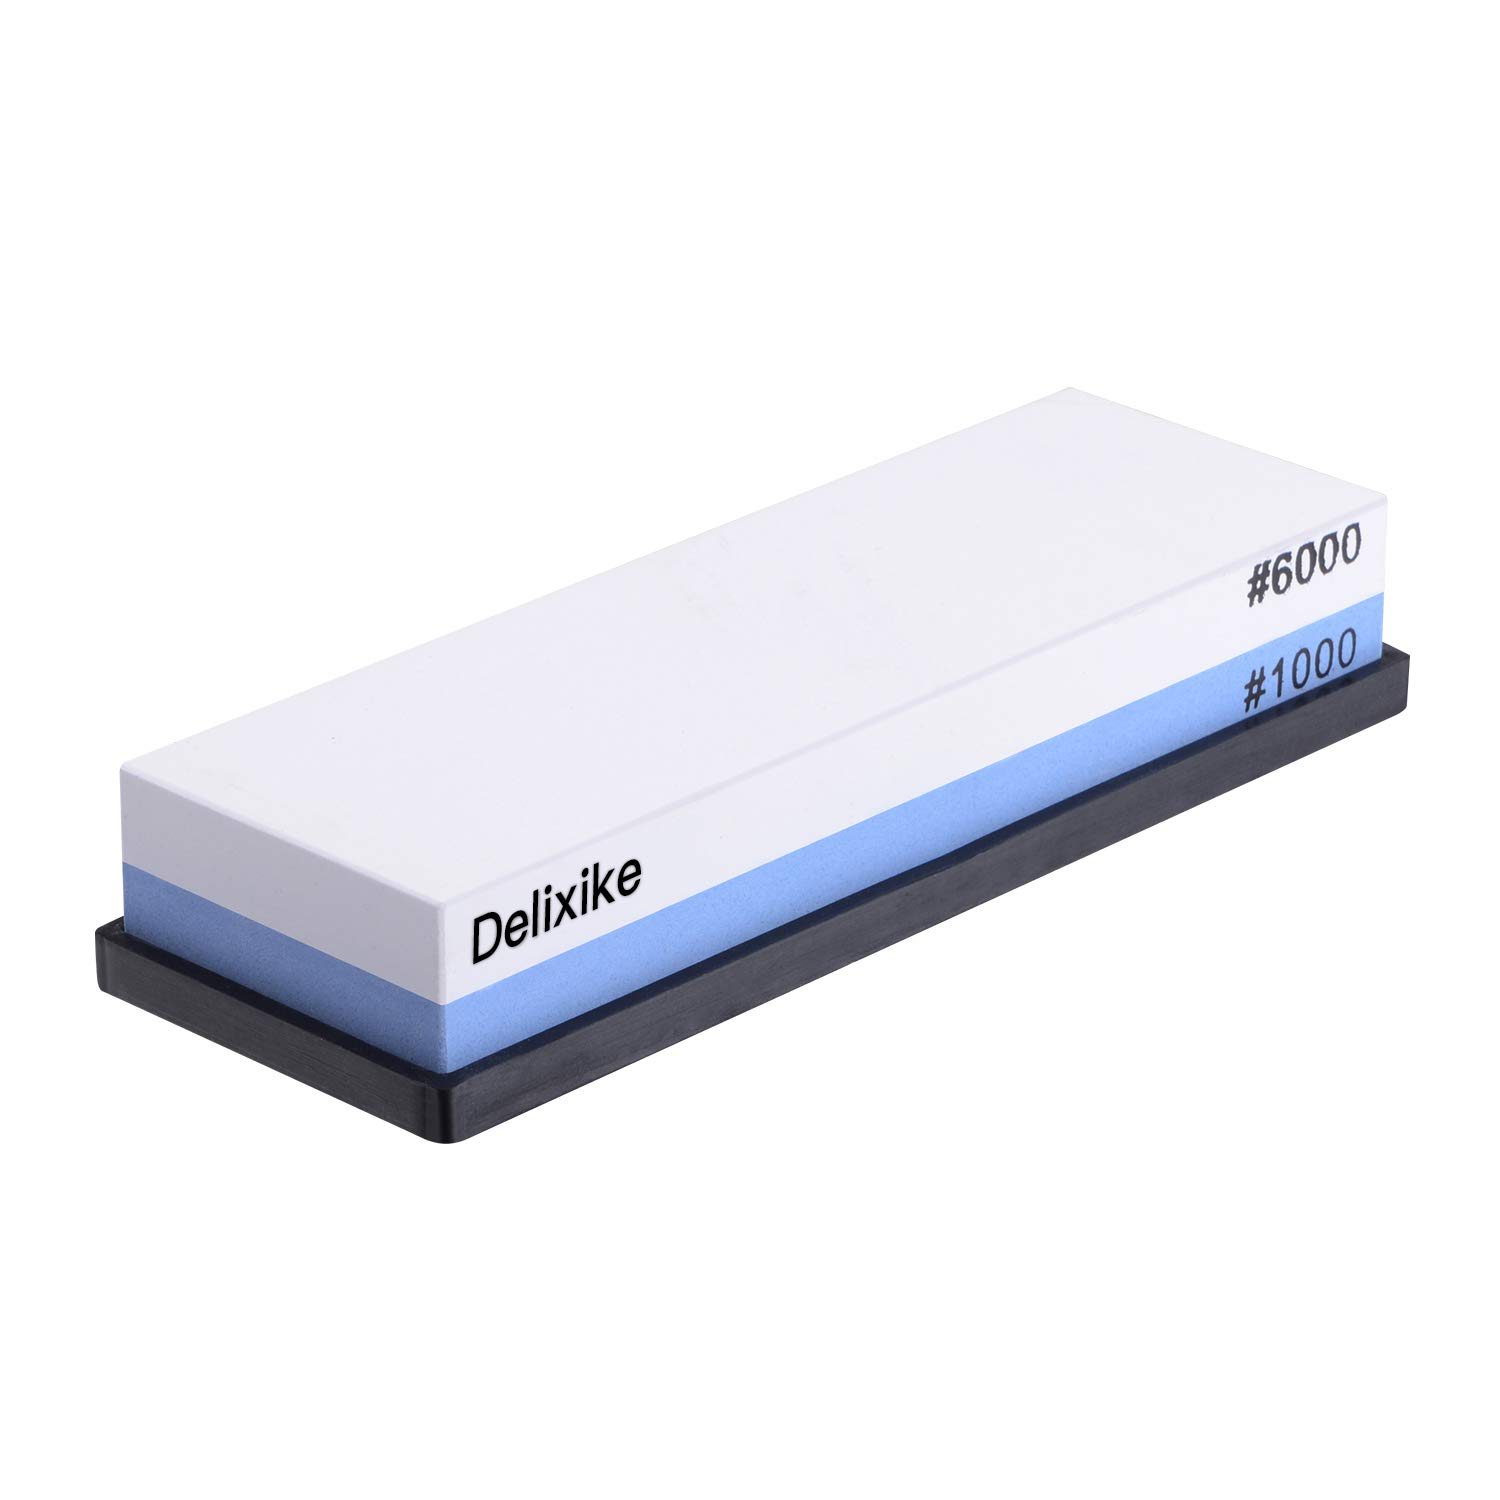 Delixike Whetstone, Knife Sharpening Stone 1000/6000 Grit Best 2-in-1 Double-Sided Combination, Kitchen Sharpener Waterstone with Non-Slip Holder